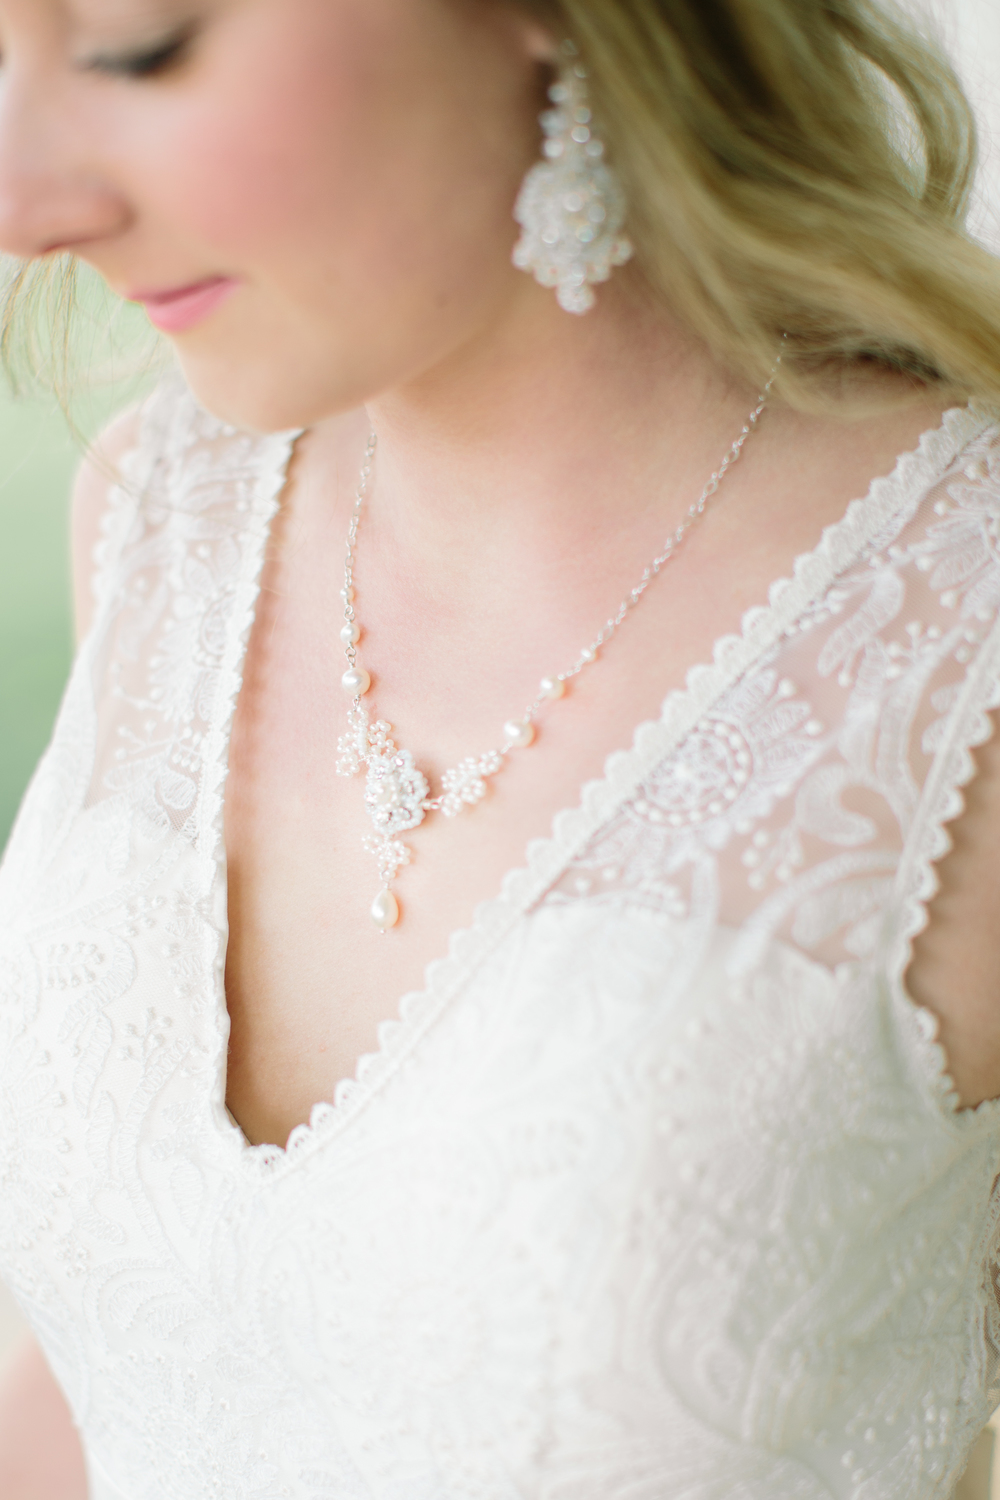 New England Bridal Jewelry Designer | Apple Blossom Wedding Inspiration